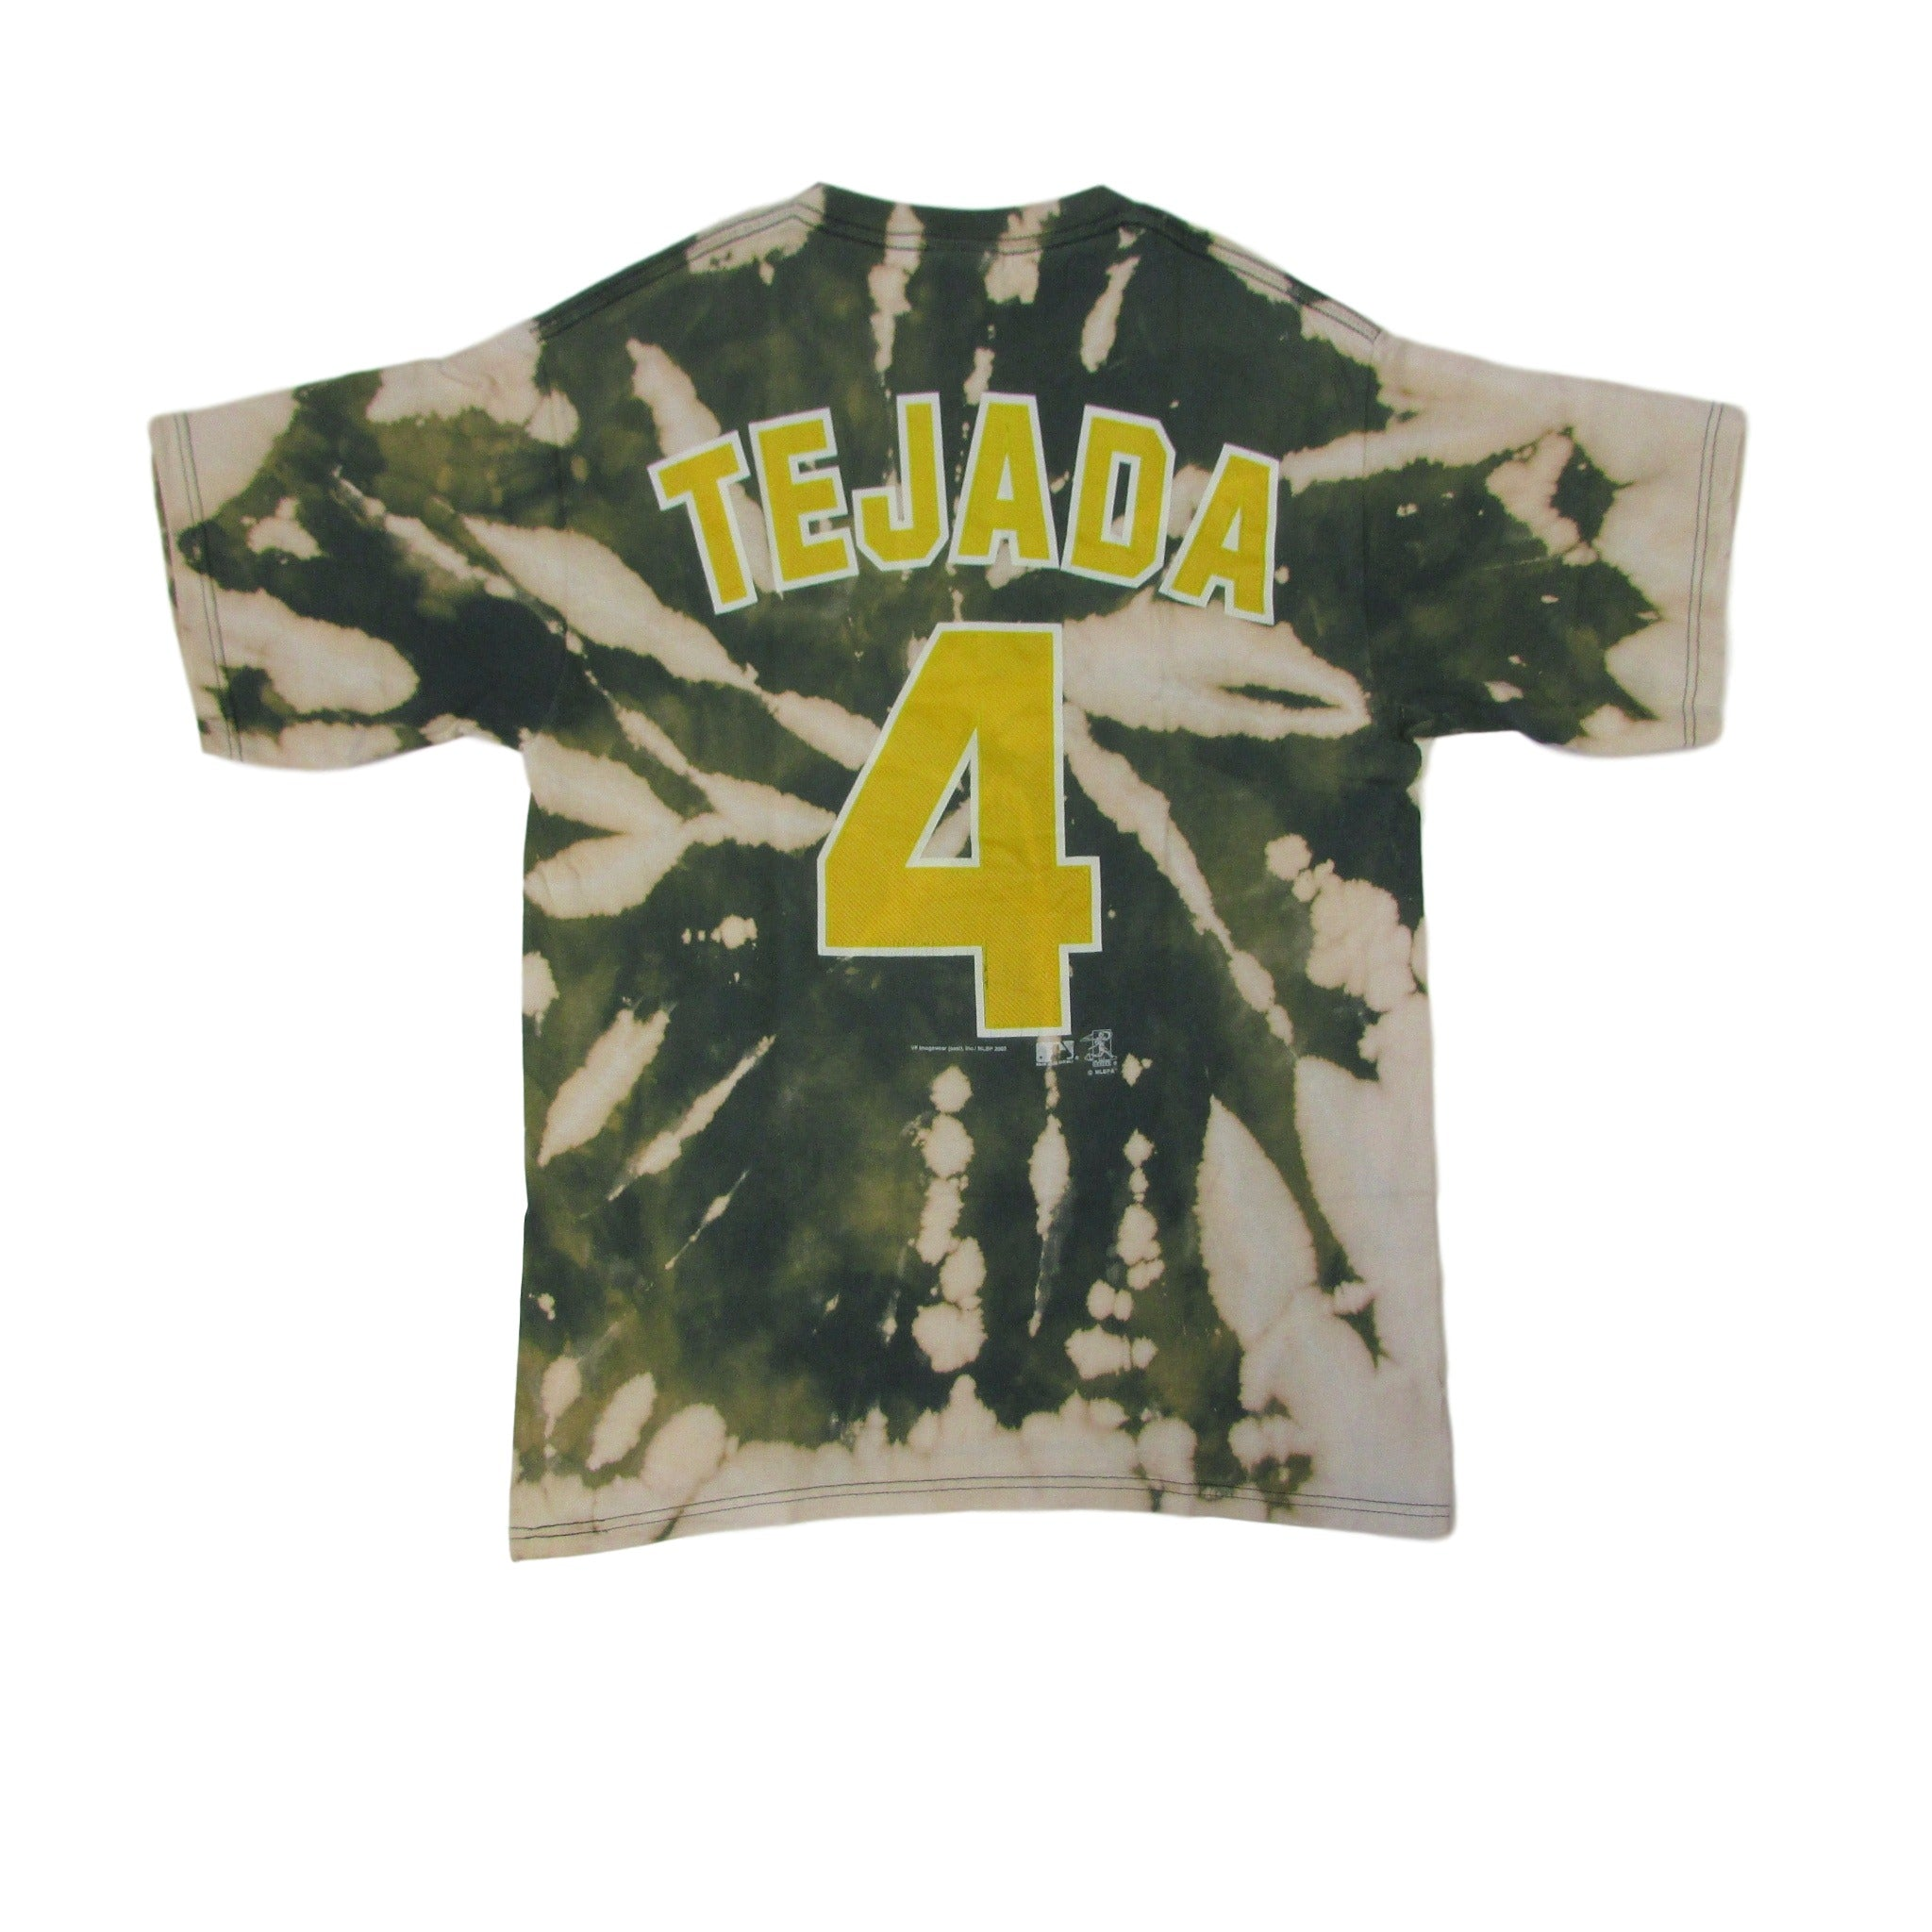 Oakland Athletics Miguel Tejada Bleach Tie Dye T-Shirt Sz M